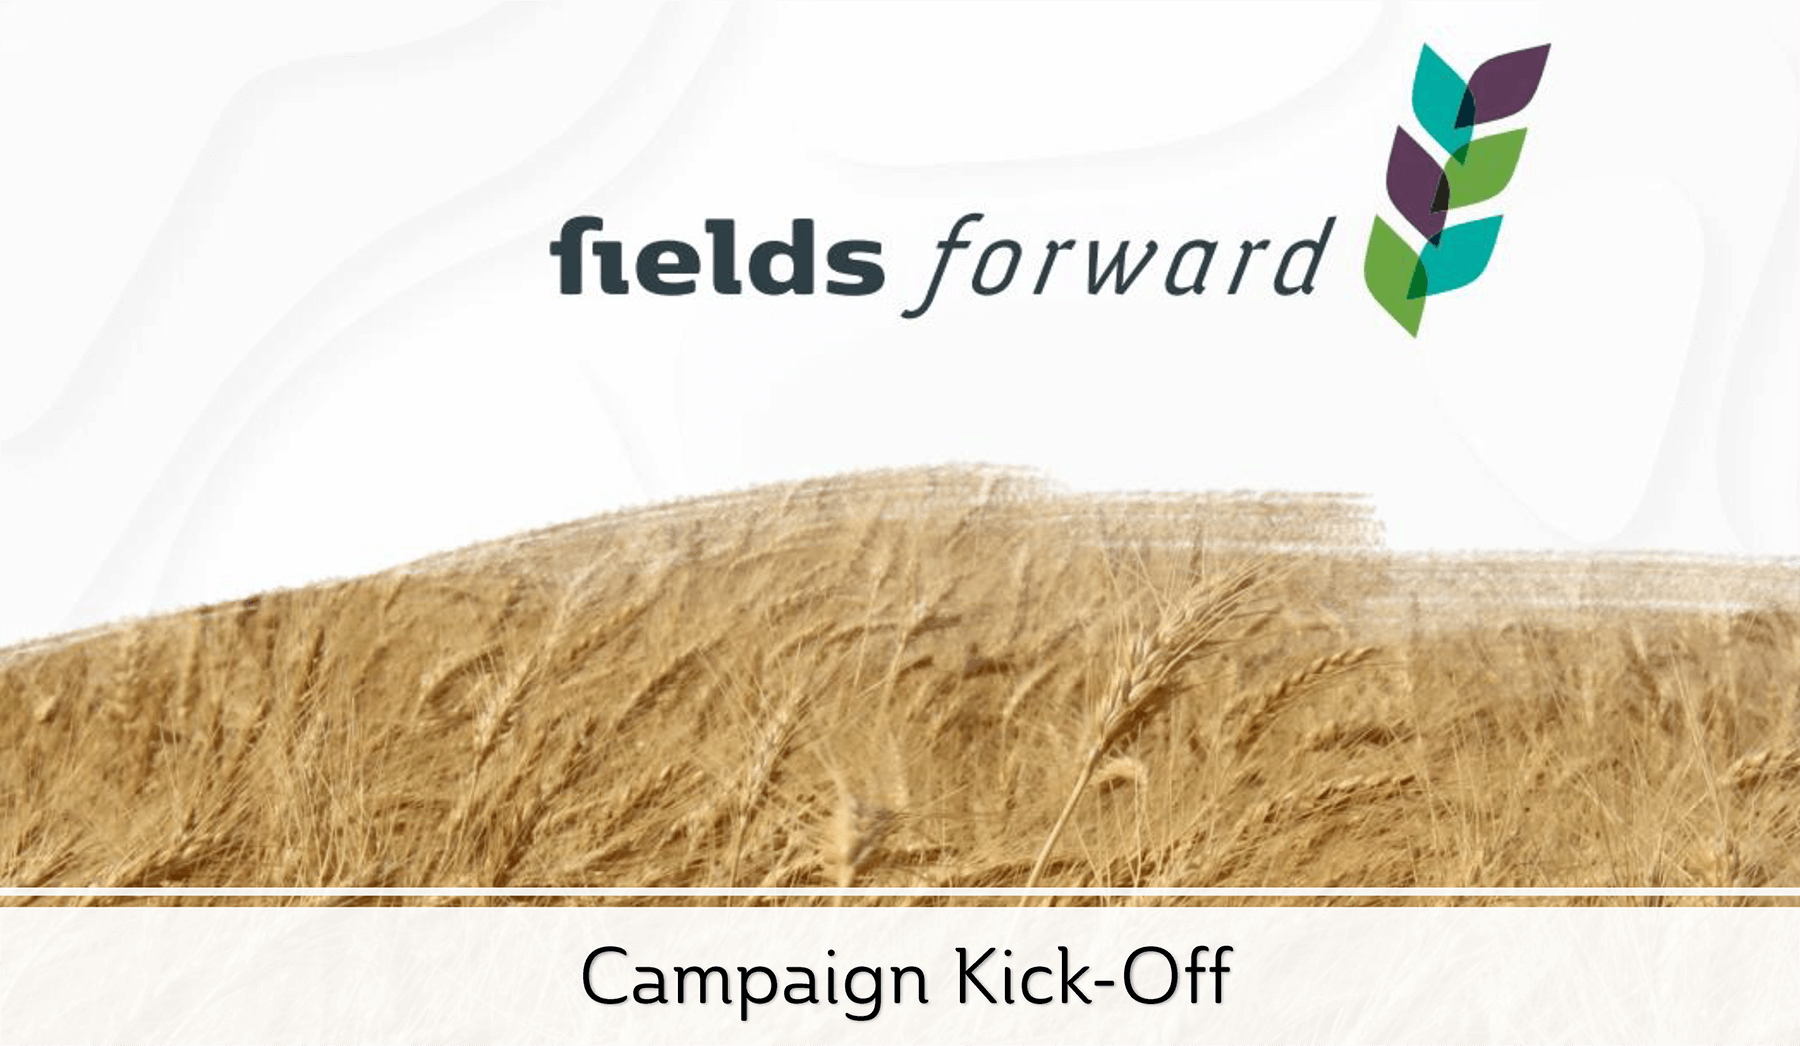 Image: Fields Forward Campaign Kickoff.